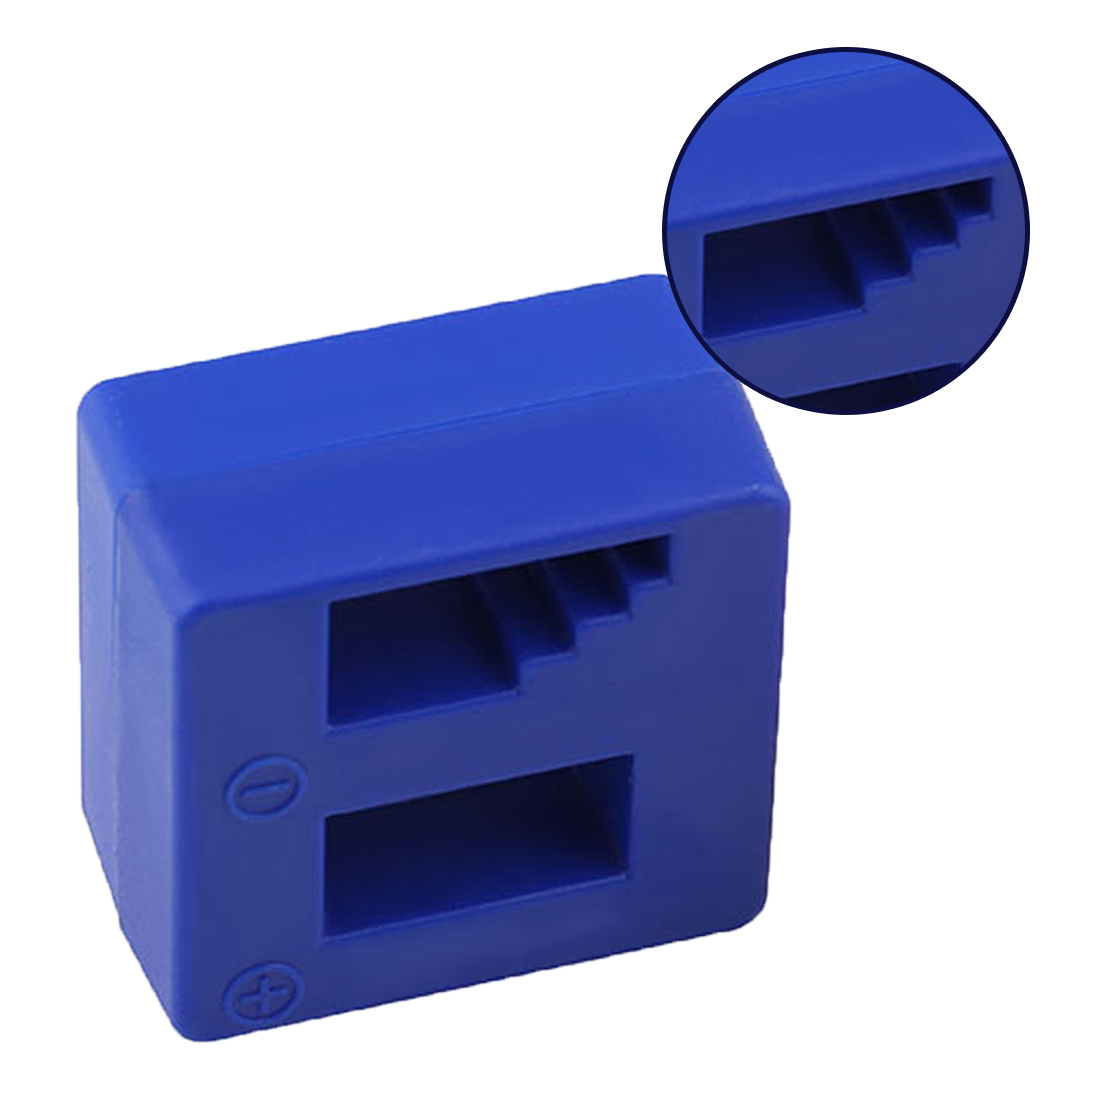 1PC Blue Magnetizer Demagnetizer Tool Screwdriver Bench Tips Bits Gadget Handy Magnetized Driver Quick Magnetic Degaussing